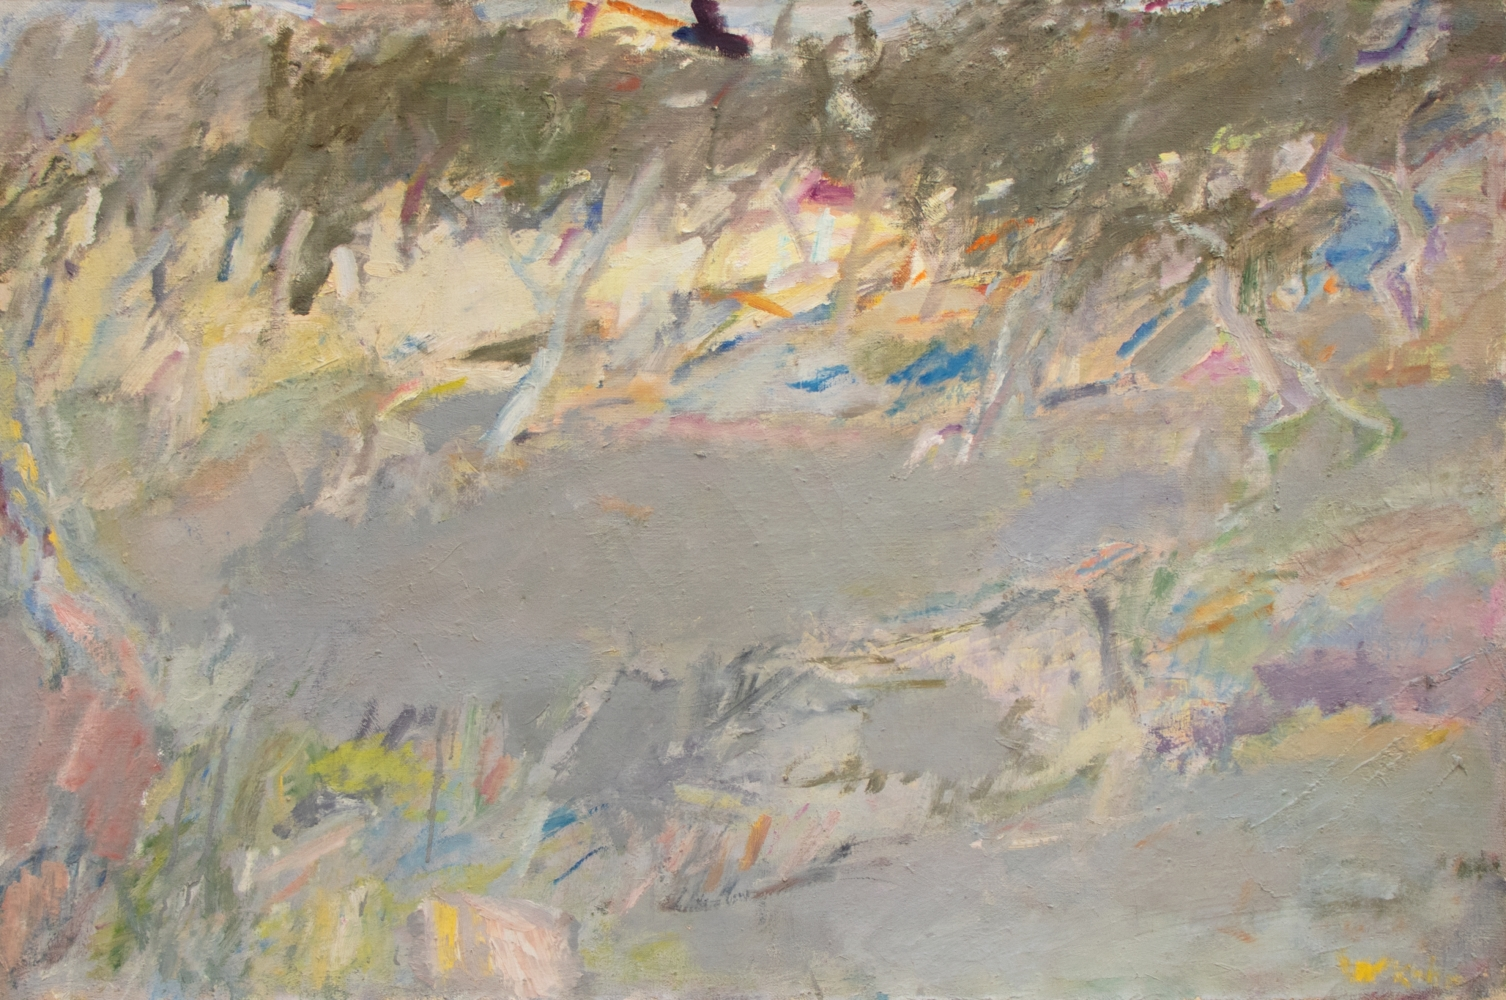 Wolf Kahn, Olive Branches, oil on linen, 26 x 39.5 inches, Wolf Kahn art For sale, Wolf Kahn Oil Paintings